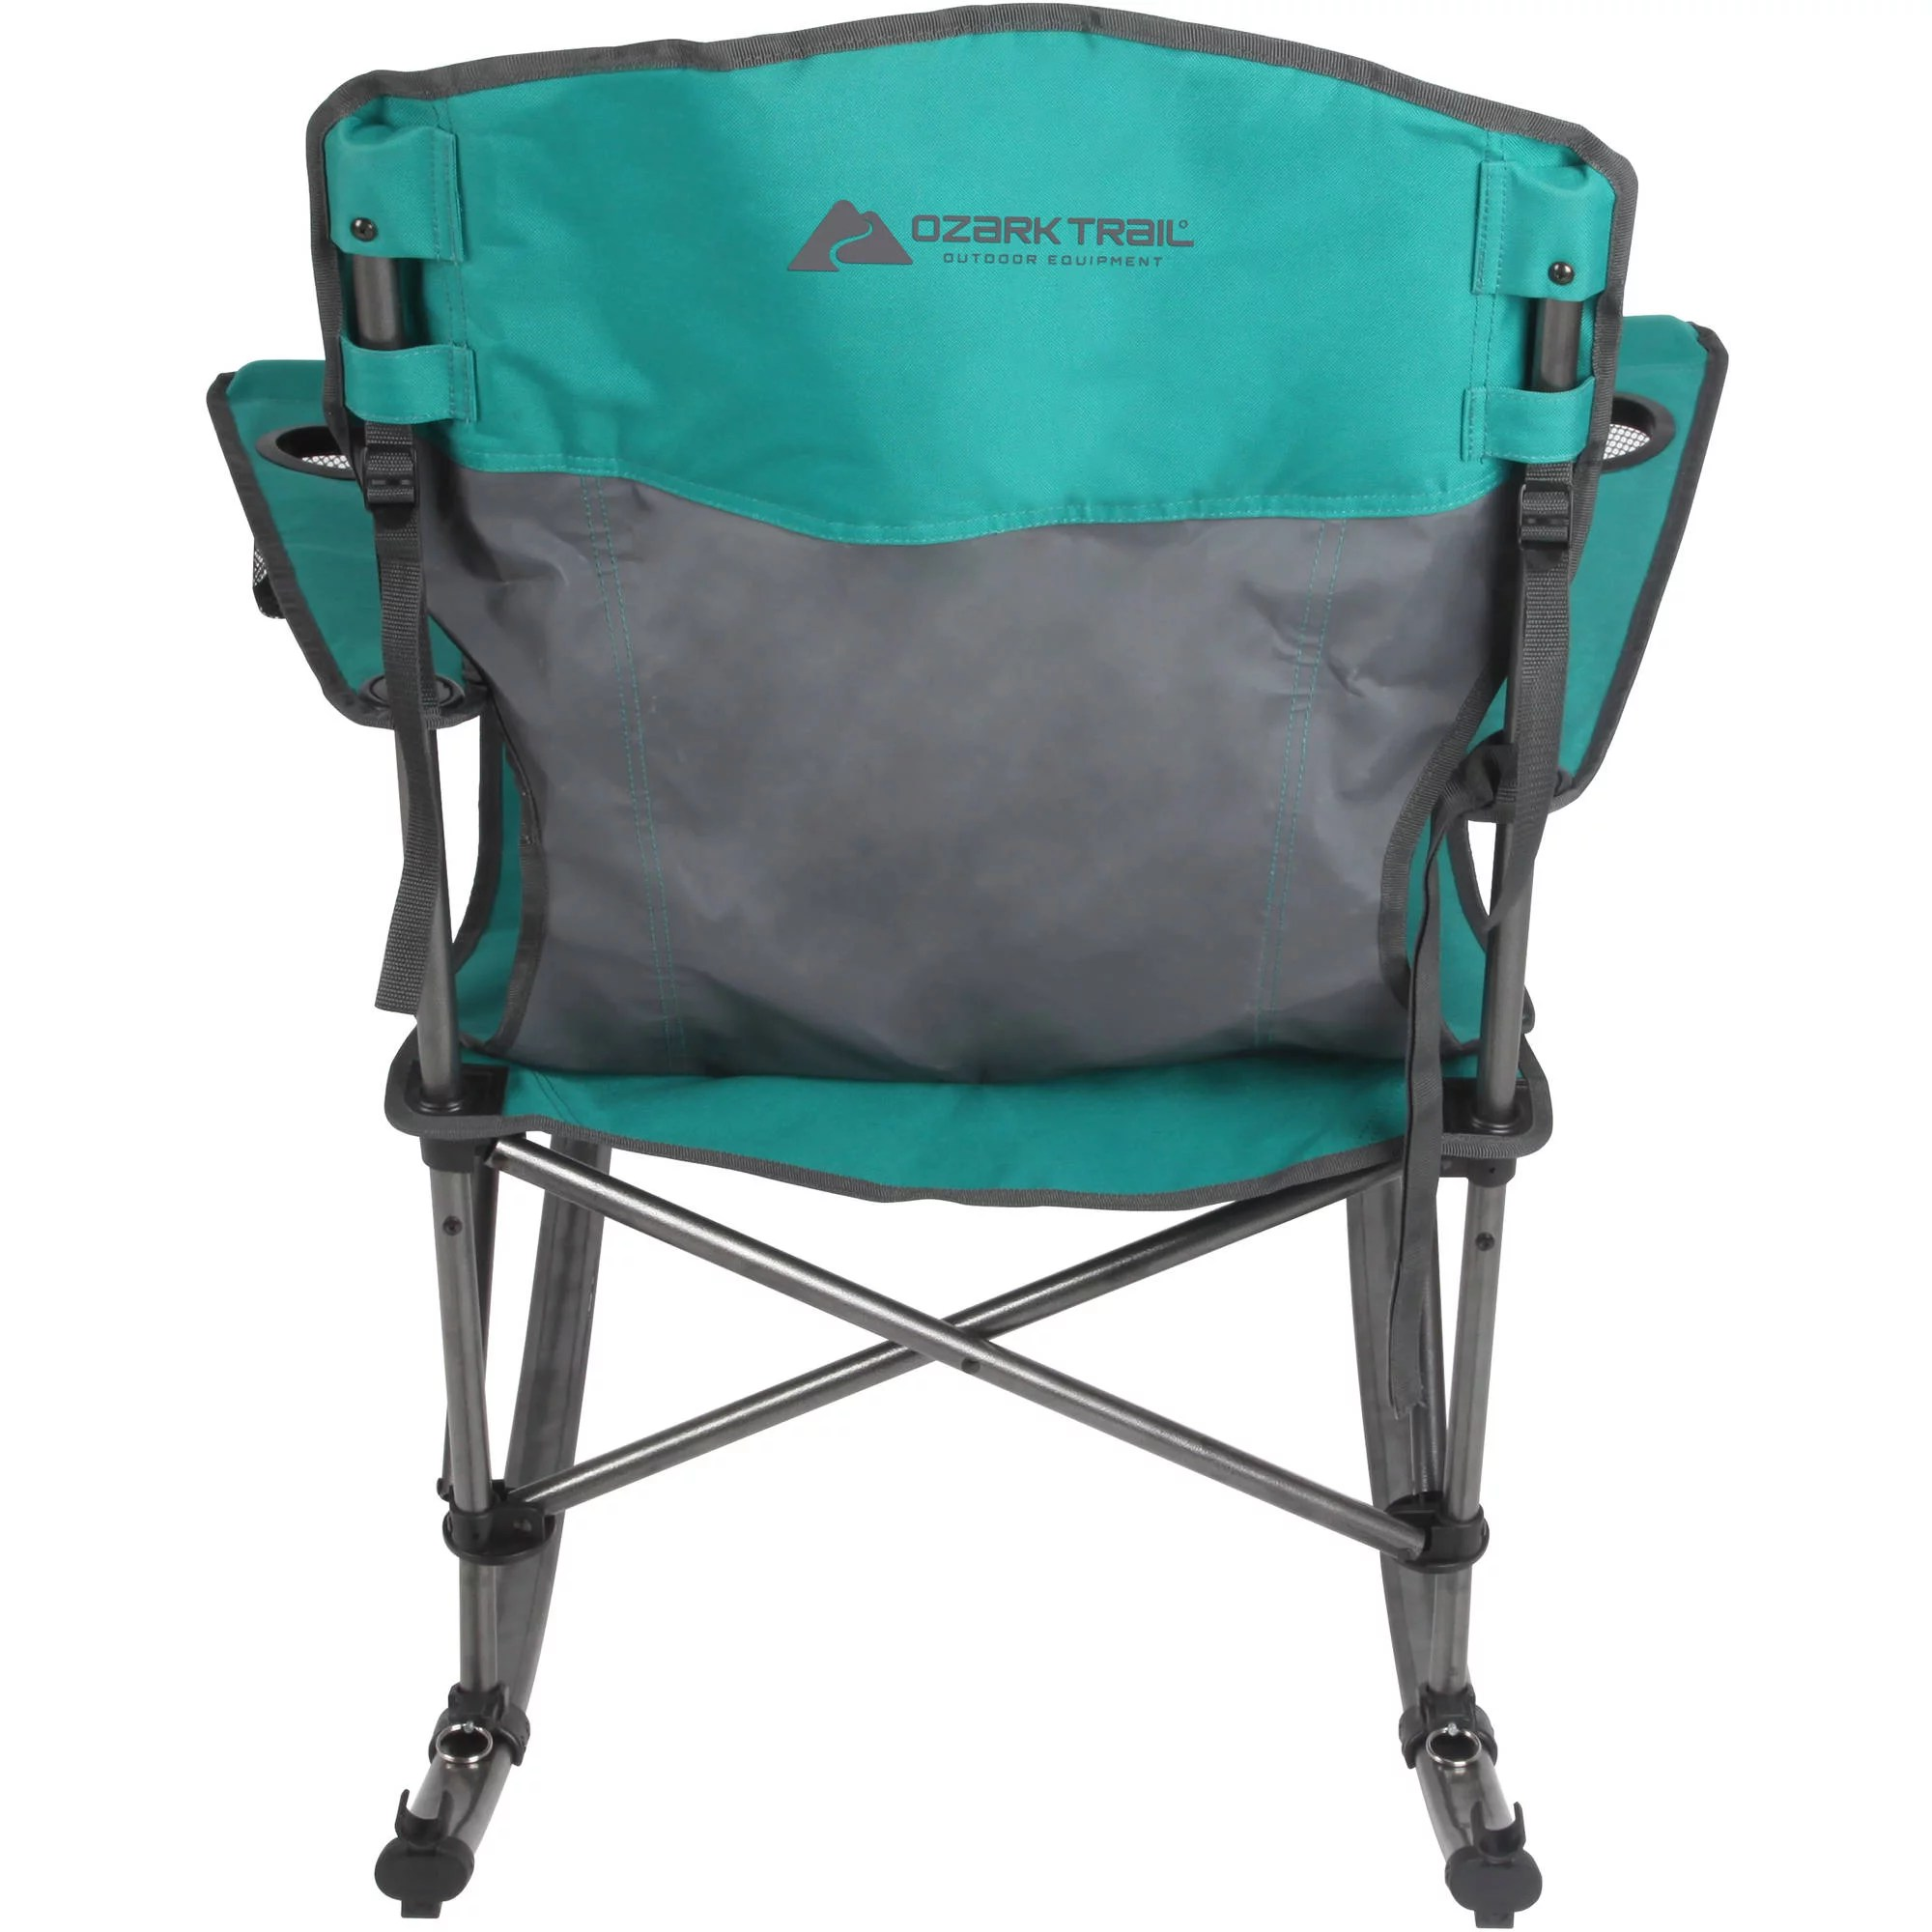 Trail Chair Ozark Trail Rocking Chair Green Ebay